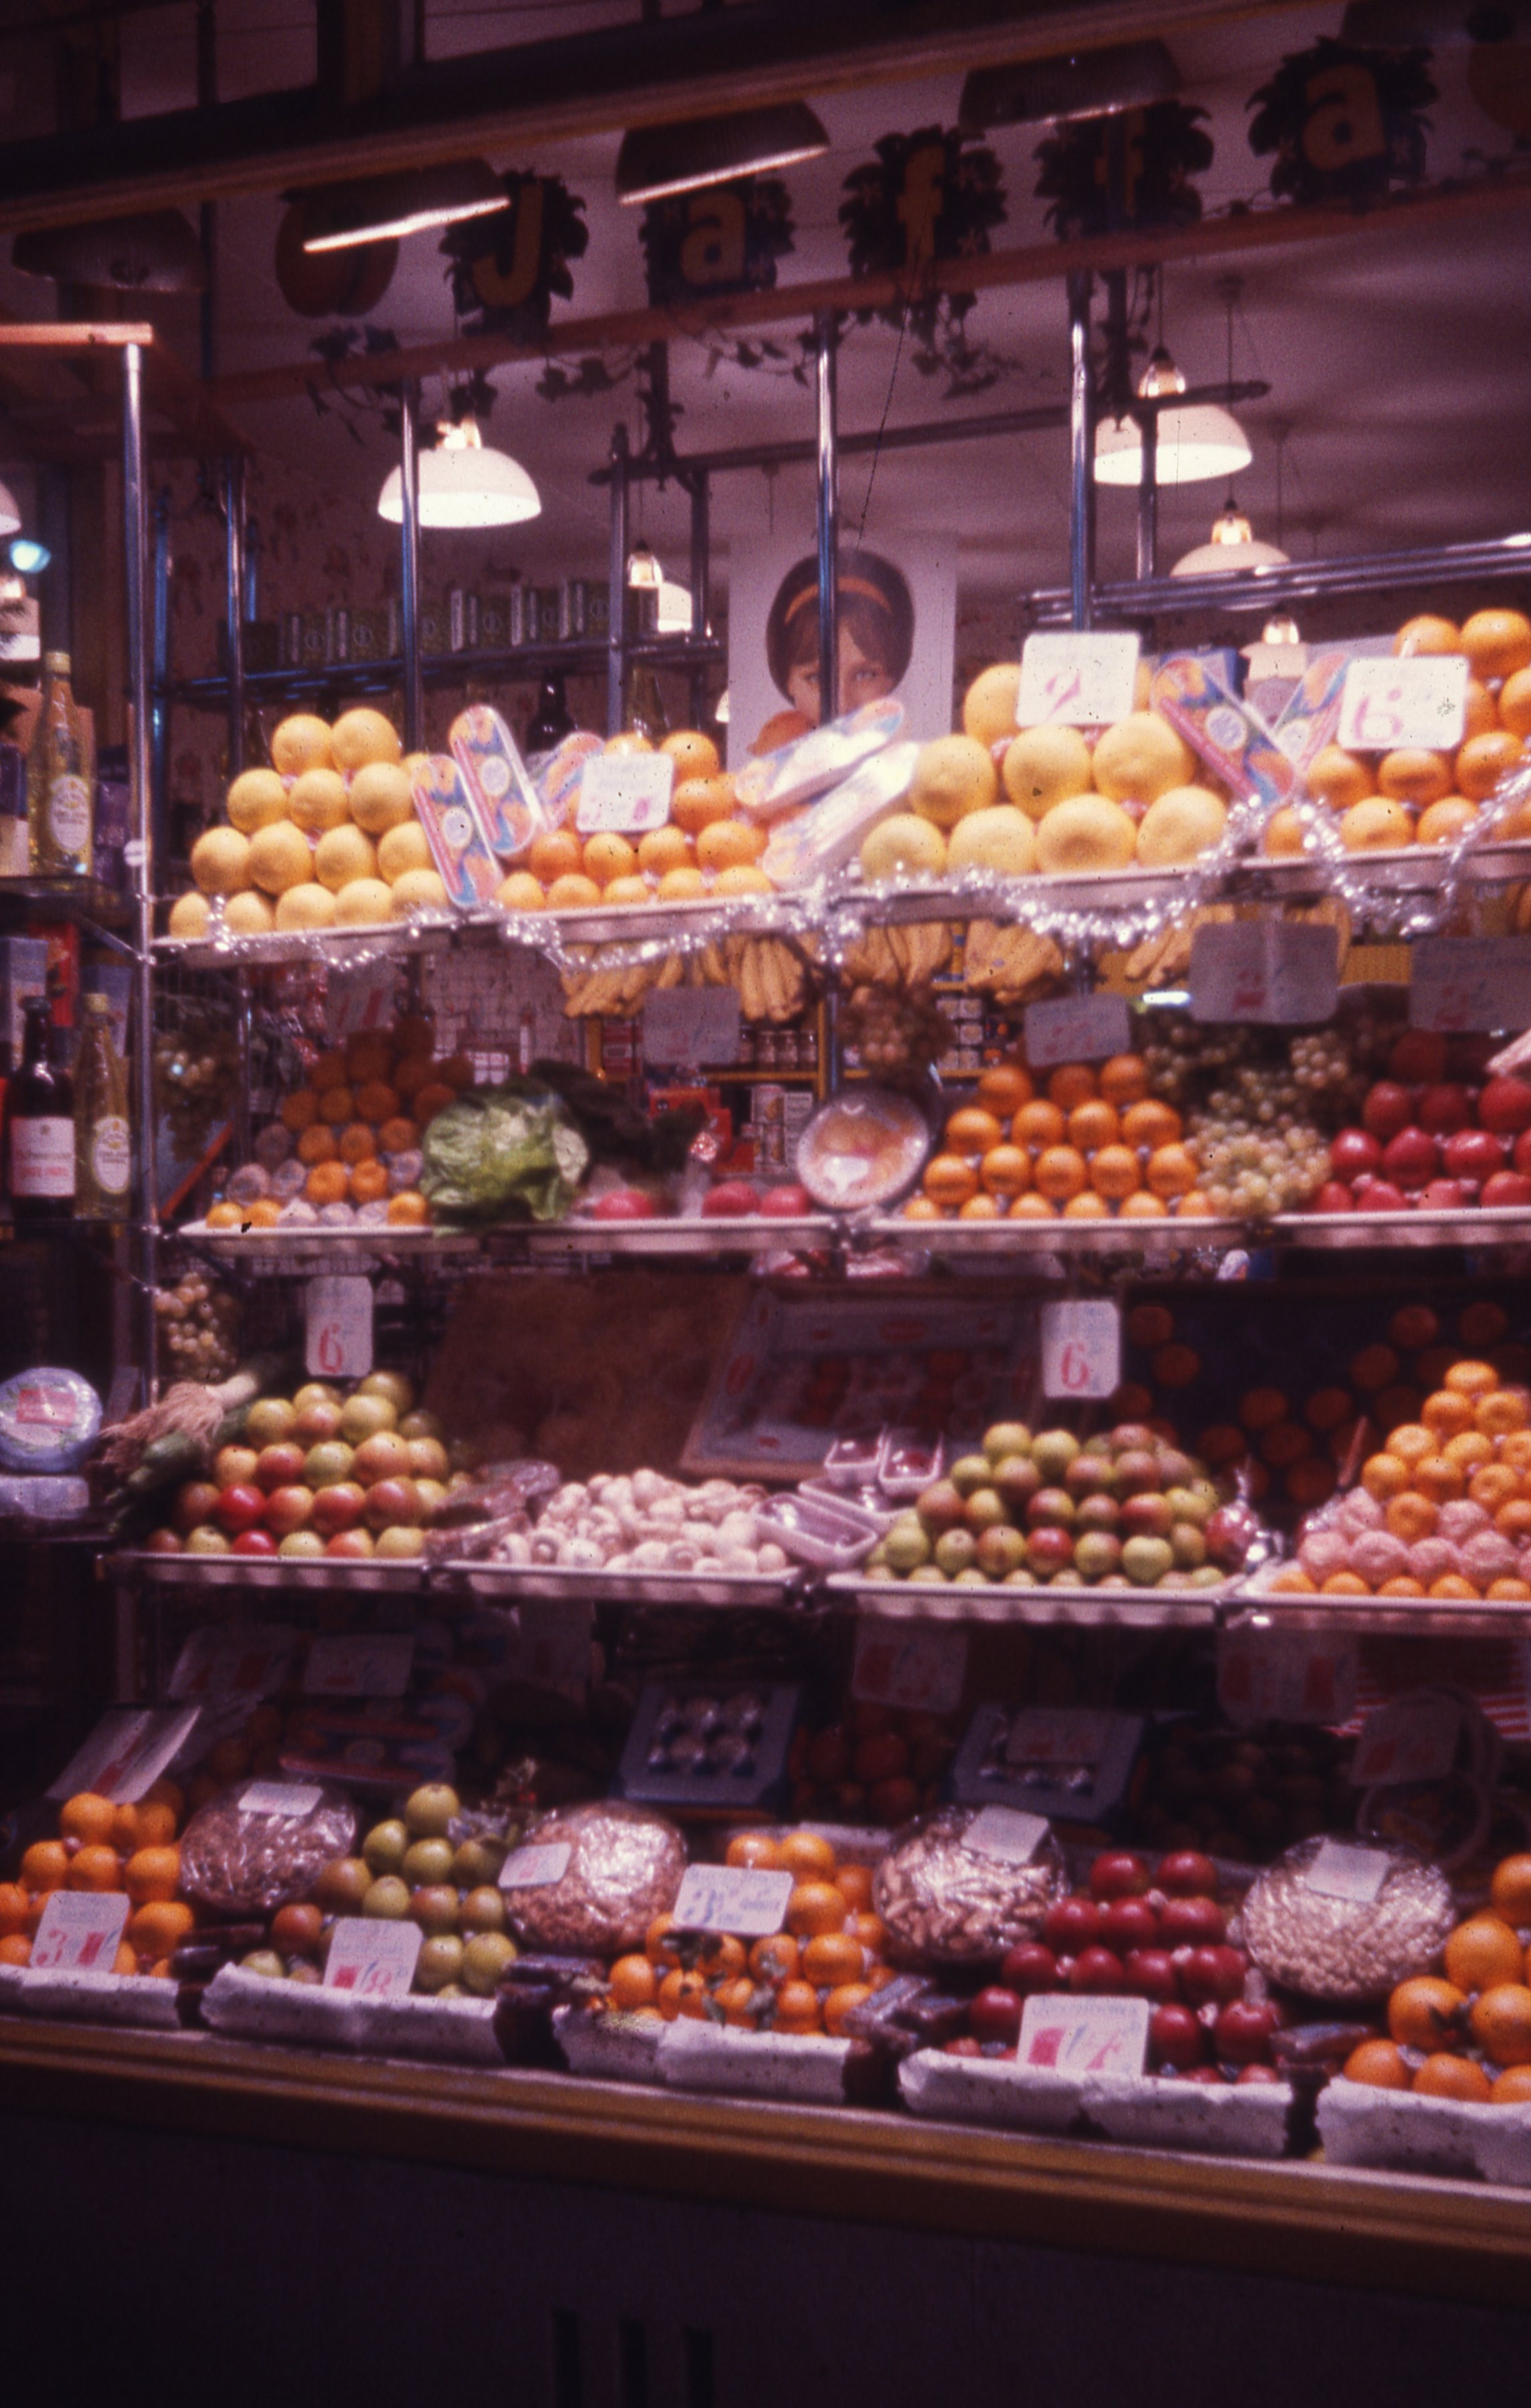 A Fruit and Veg display, taken somewhere in Newcastle upon Tyne. This is a 35mm slide. It was taken in 1965.